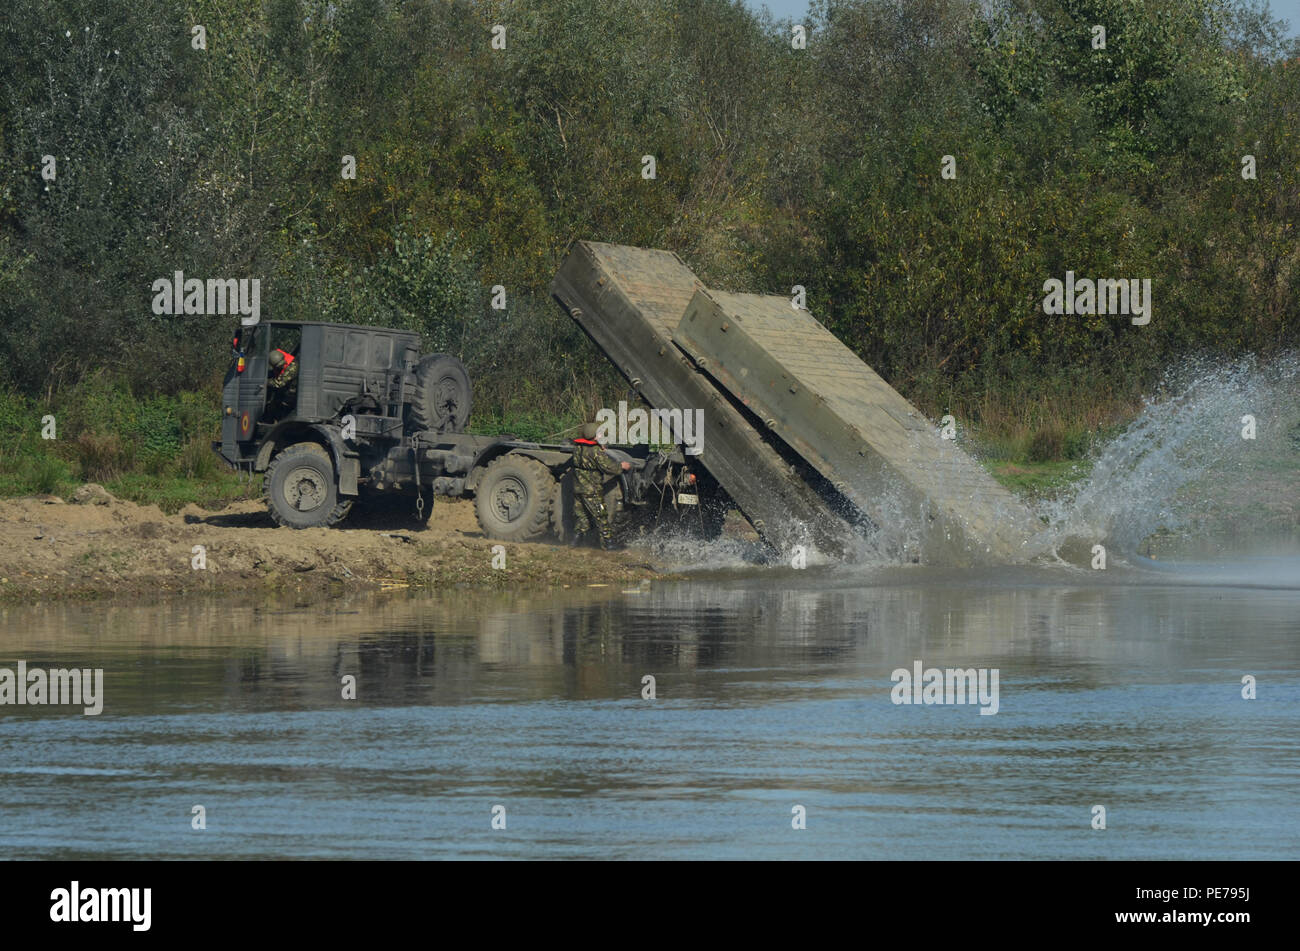 Romanian Soldiers demonstrate how they unload pieces of the floating bridge into the Mures River during Exercise Dragoon Crossing – Romania near Arad, Romania, Oct. 24-26, 2015. Dragoon Crossing – Romania is a strengthening of NATO's persistent presence in the region in support of Operation Atlantic Resolve.  (U.S. Army photo by Staff Sgt. Steven M. Colvin/10th Press Camp Headquarters) - Stock Image